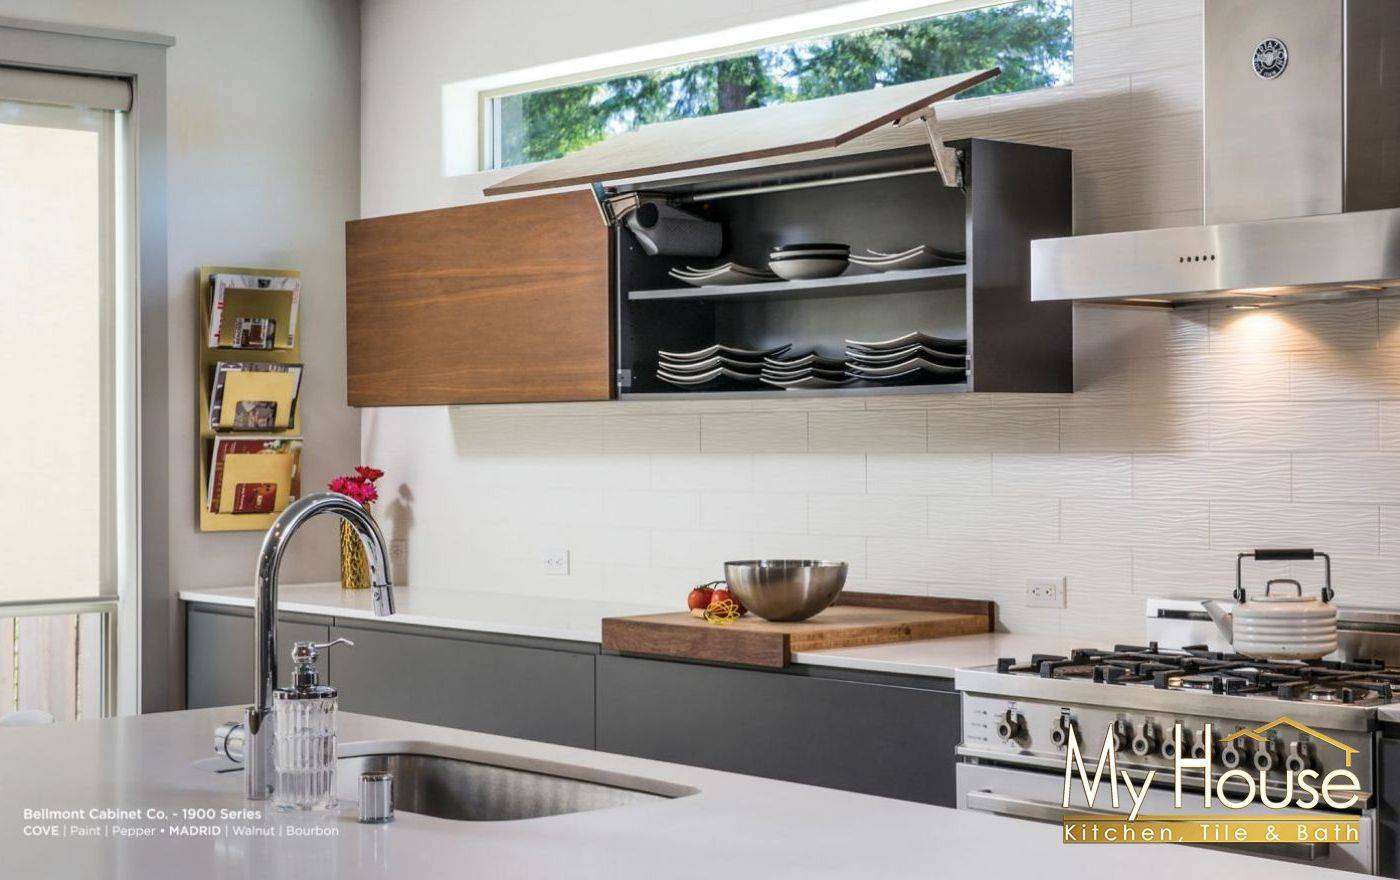 Bellmont Cabinets 1900 Cove Madrid